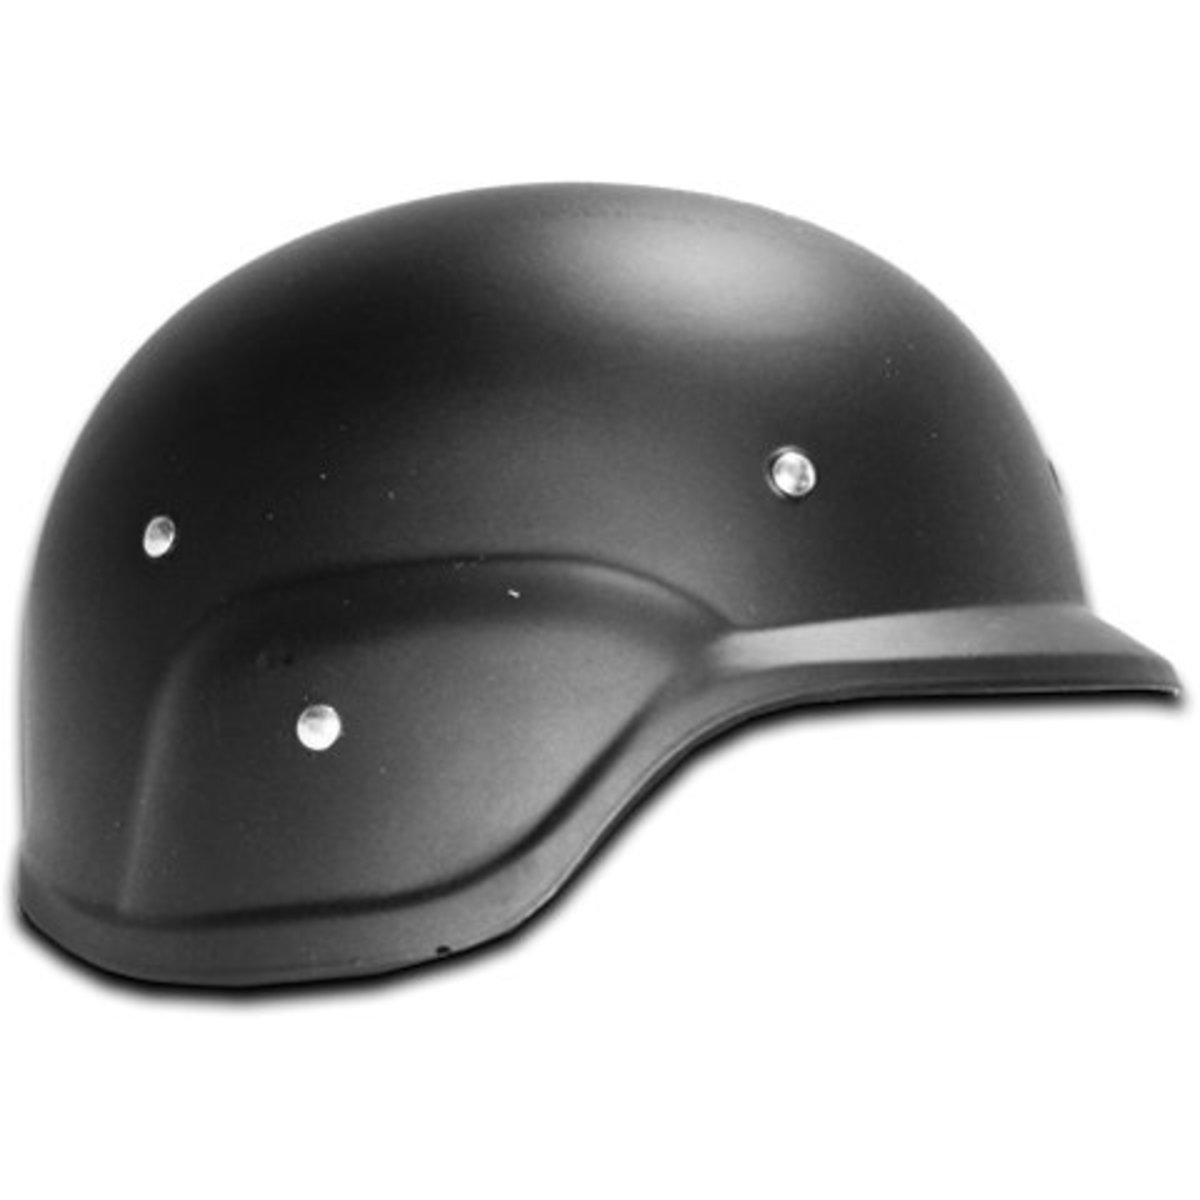 View larger image of GXG Tactical Swat Helmet